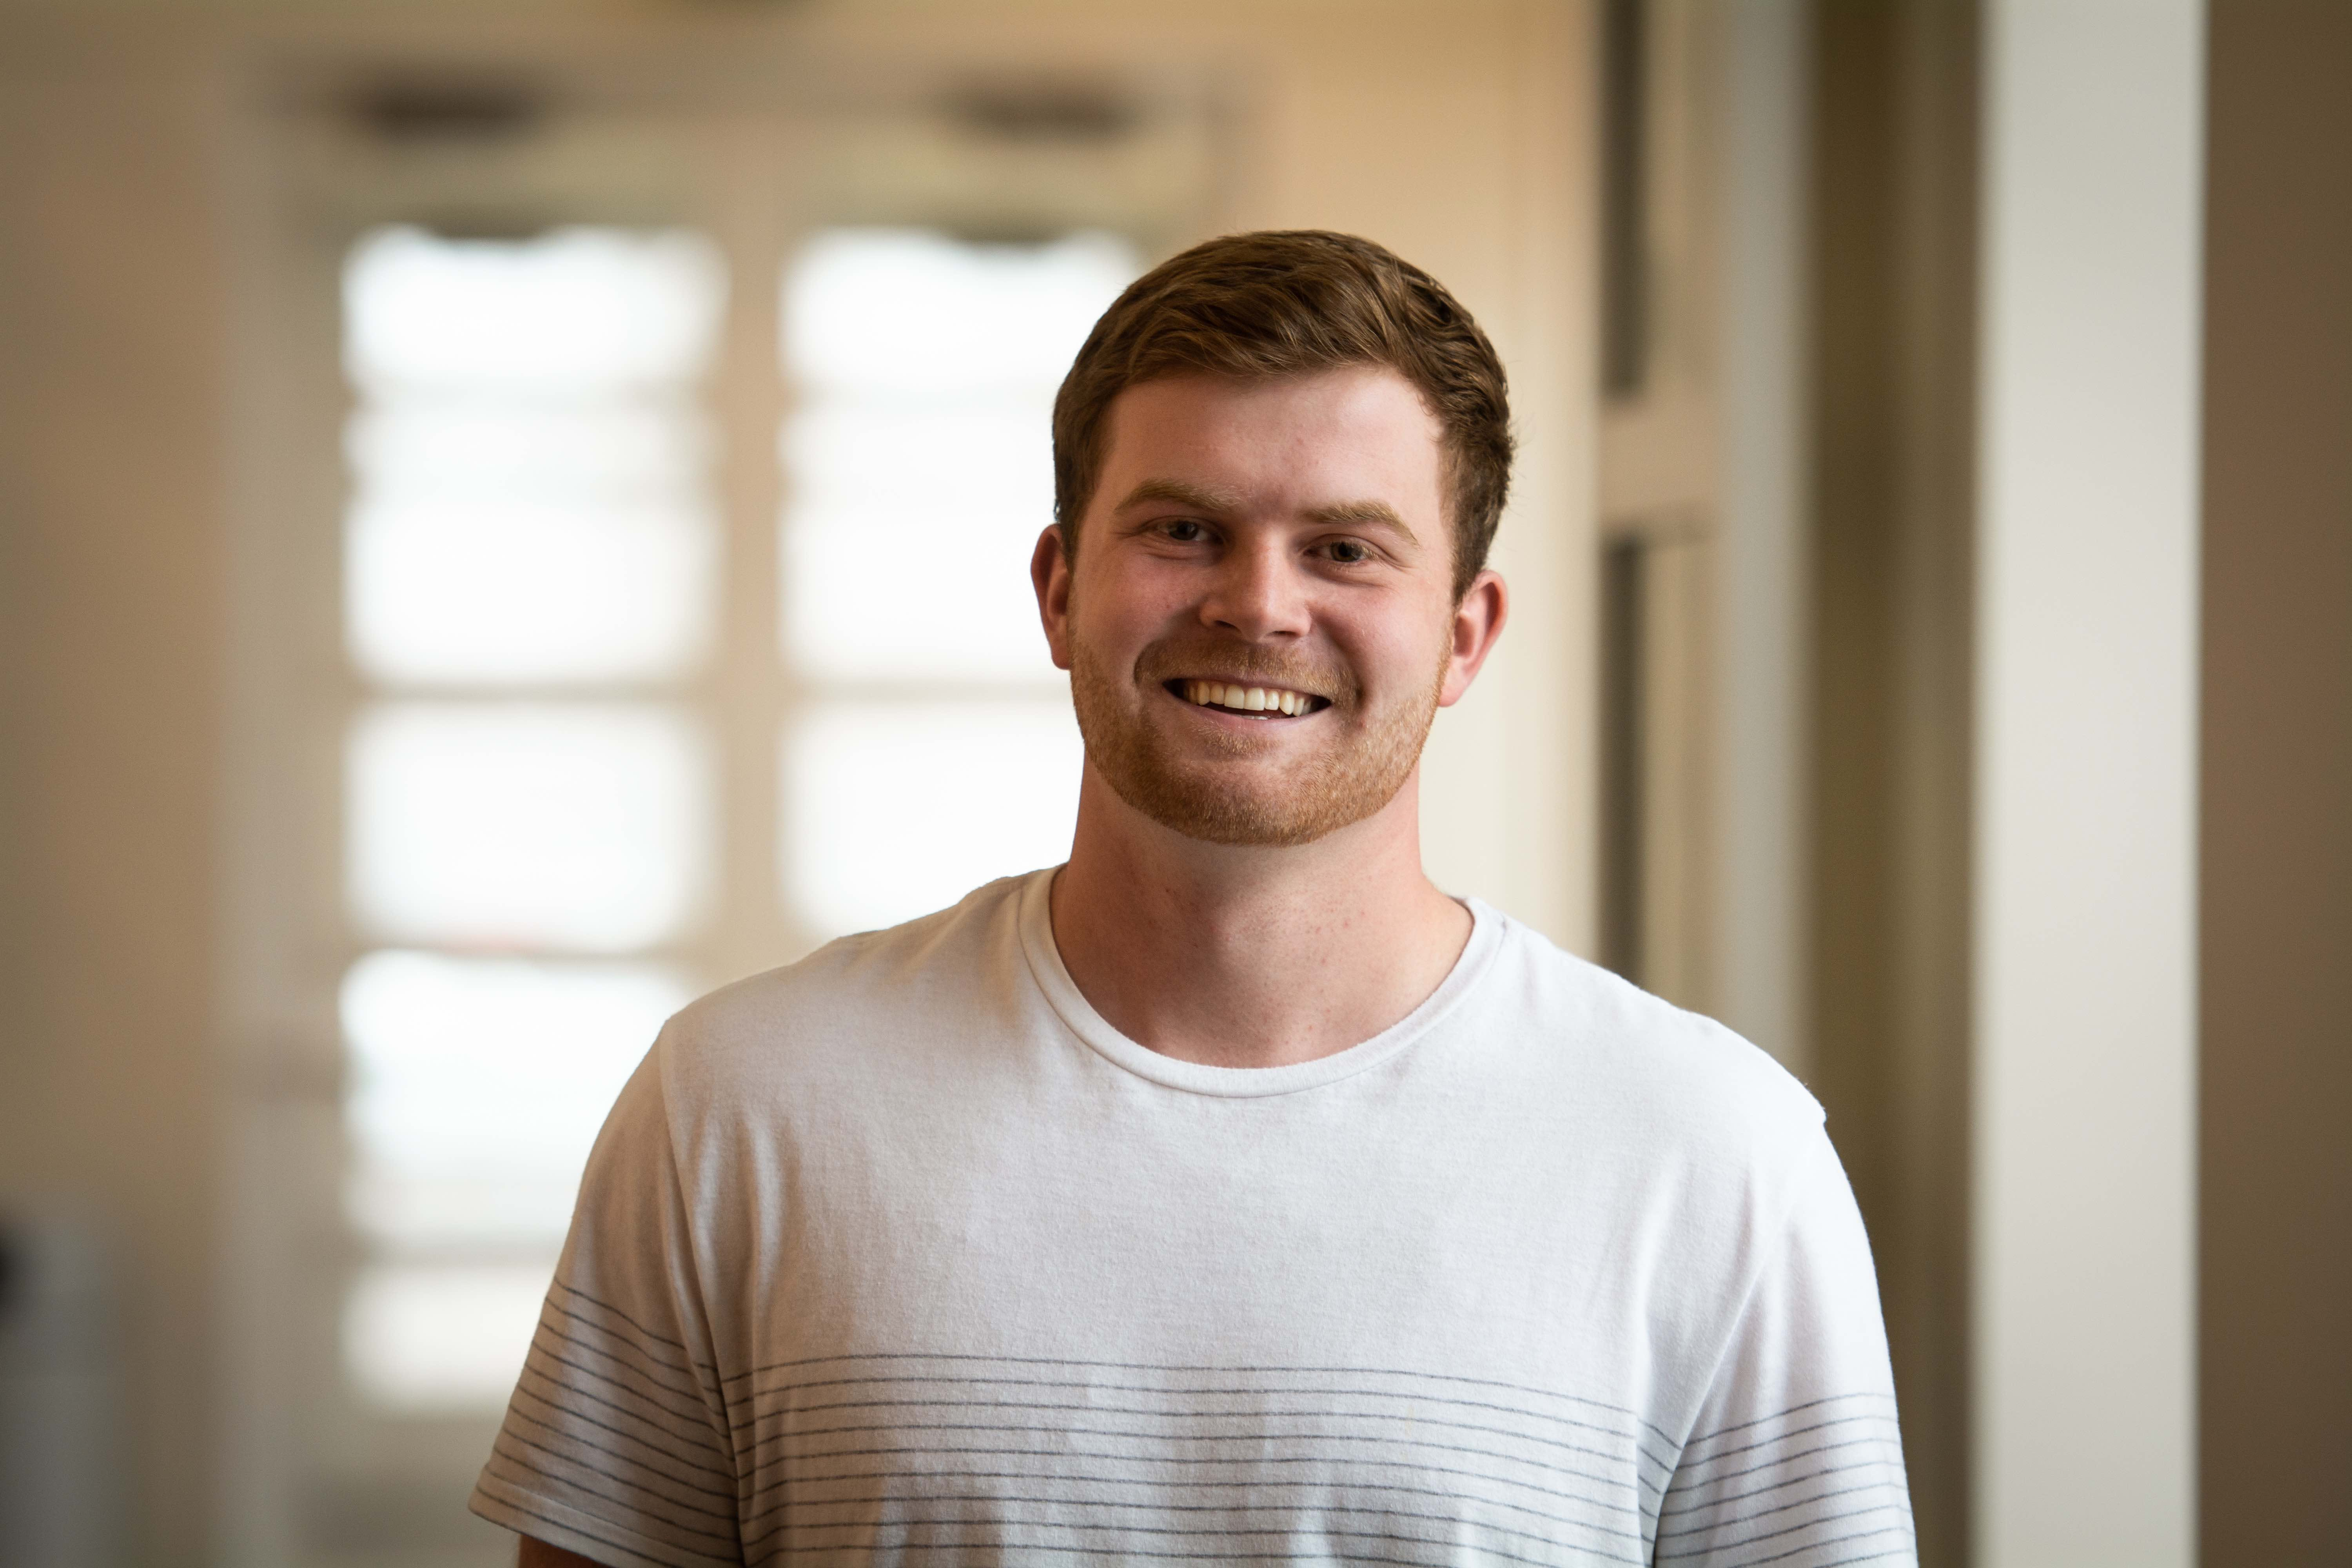 Peyton Gallagher, Business Major